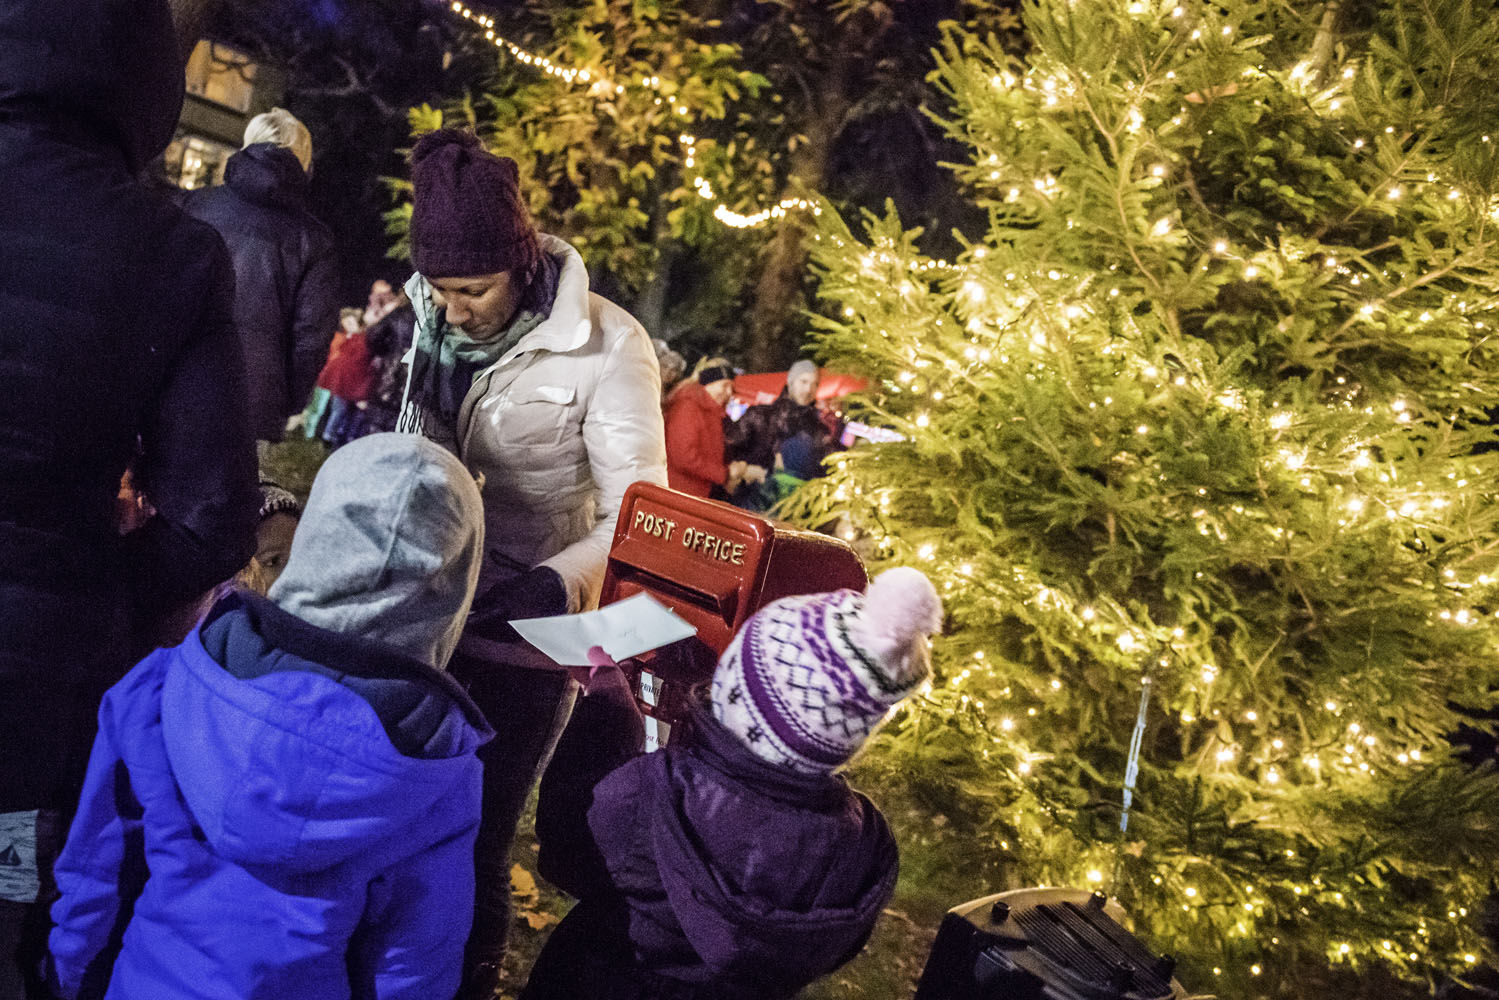 Children post letters in an old fashioned letterbox next to an illuminated Christmas Tree.